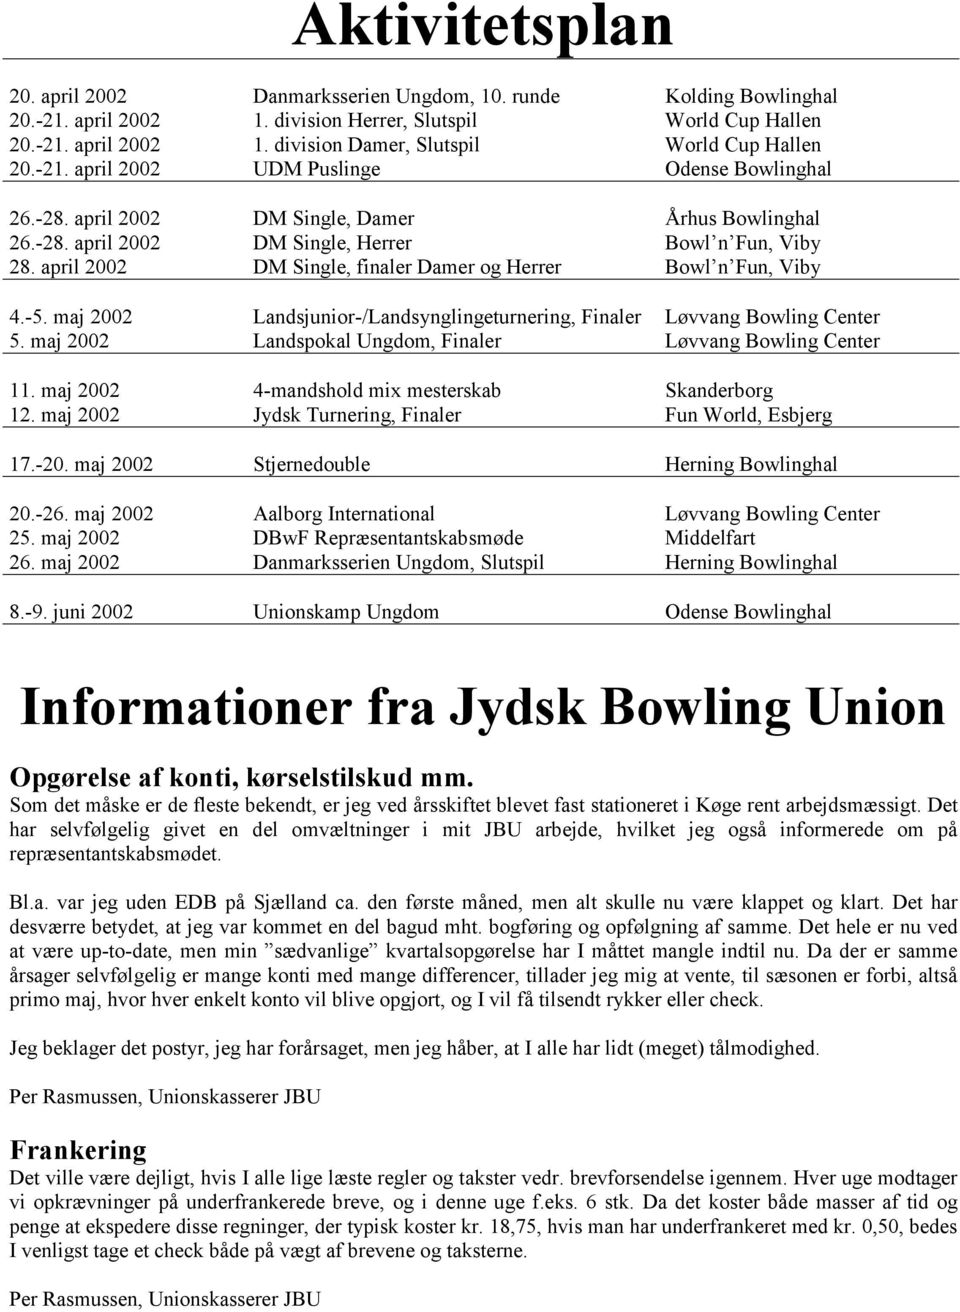 april 2002 DM Single, finaler Damer og Herrer Bowl n Fun, Viby 4.-5. maj 2002 Landsjunior-/Landsynglingeturnering, Finaler Løvvang Bowling Center 5.